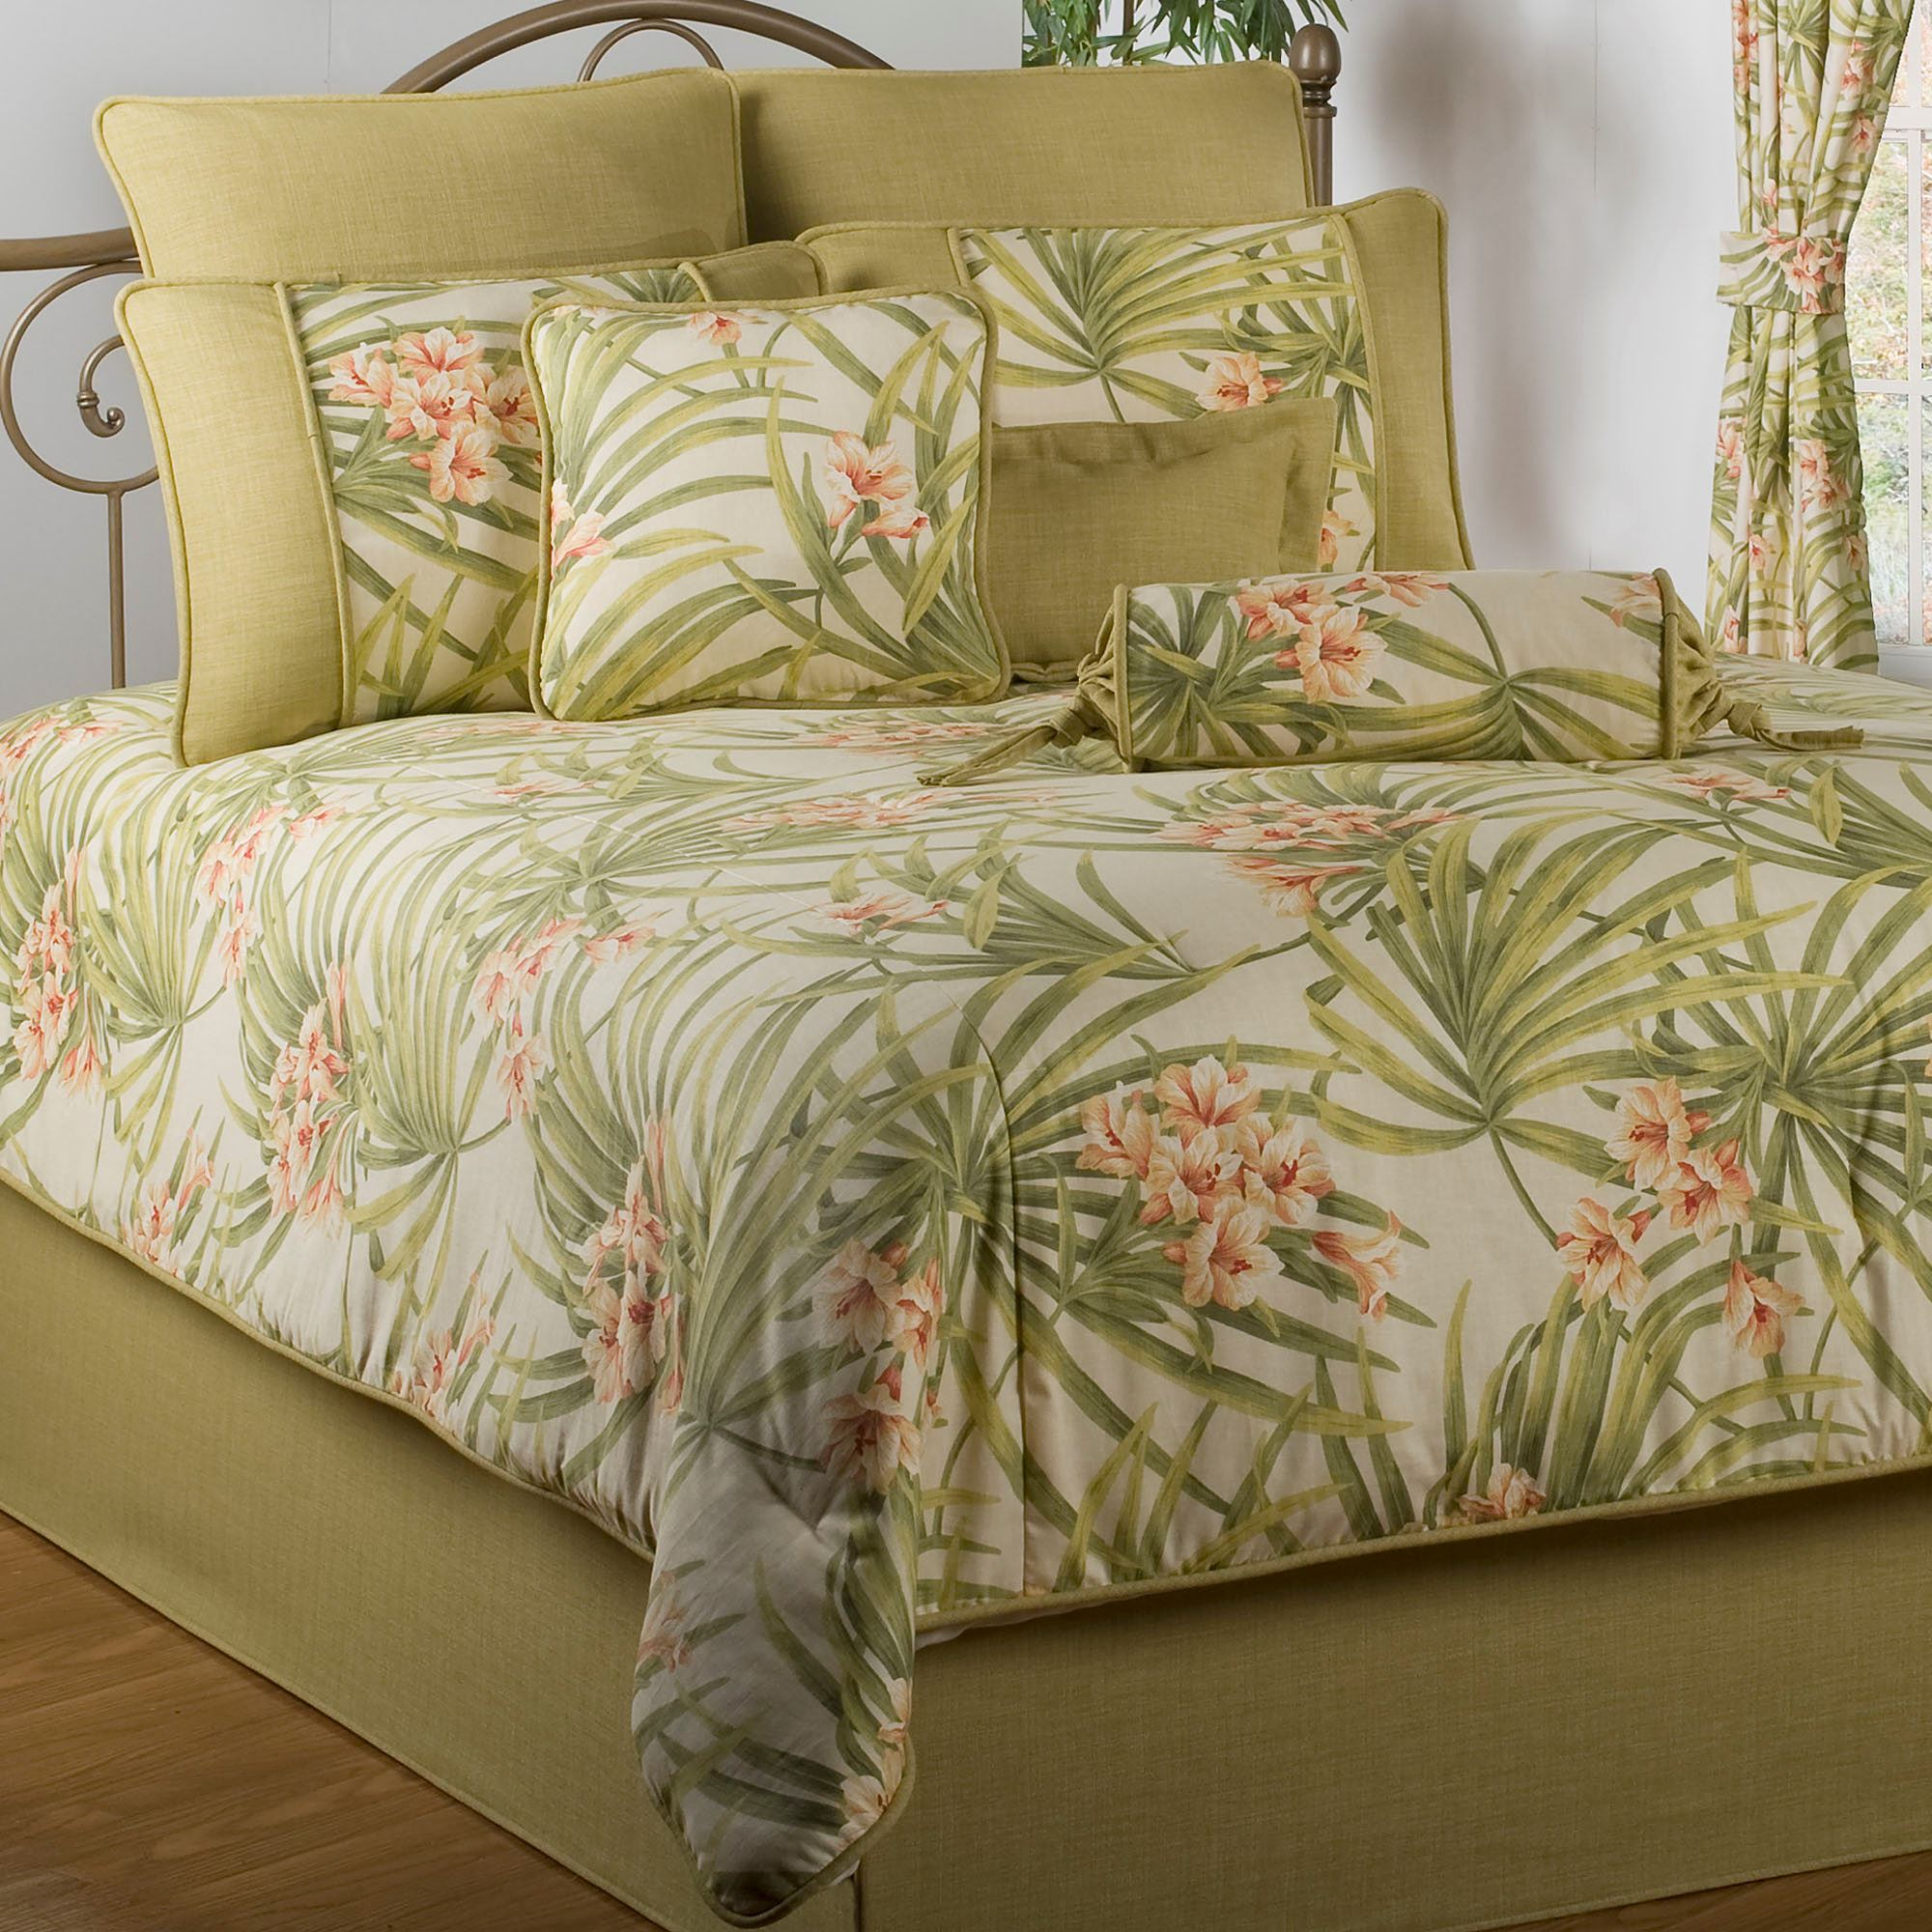 Sea island tropical comforter bedding - Bedroom sheets and comforter sets ...